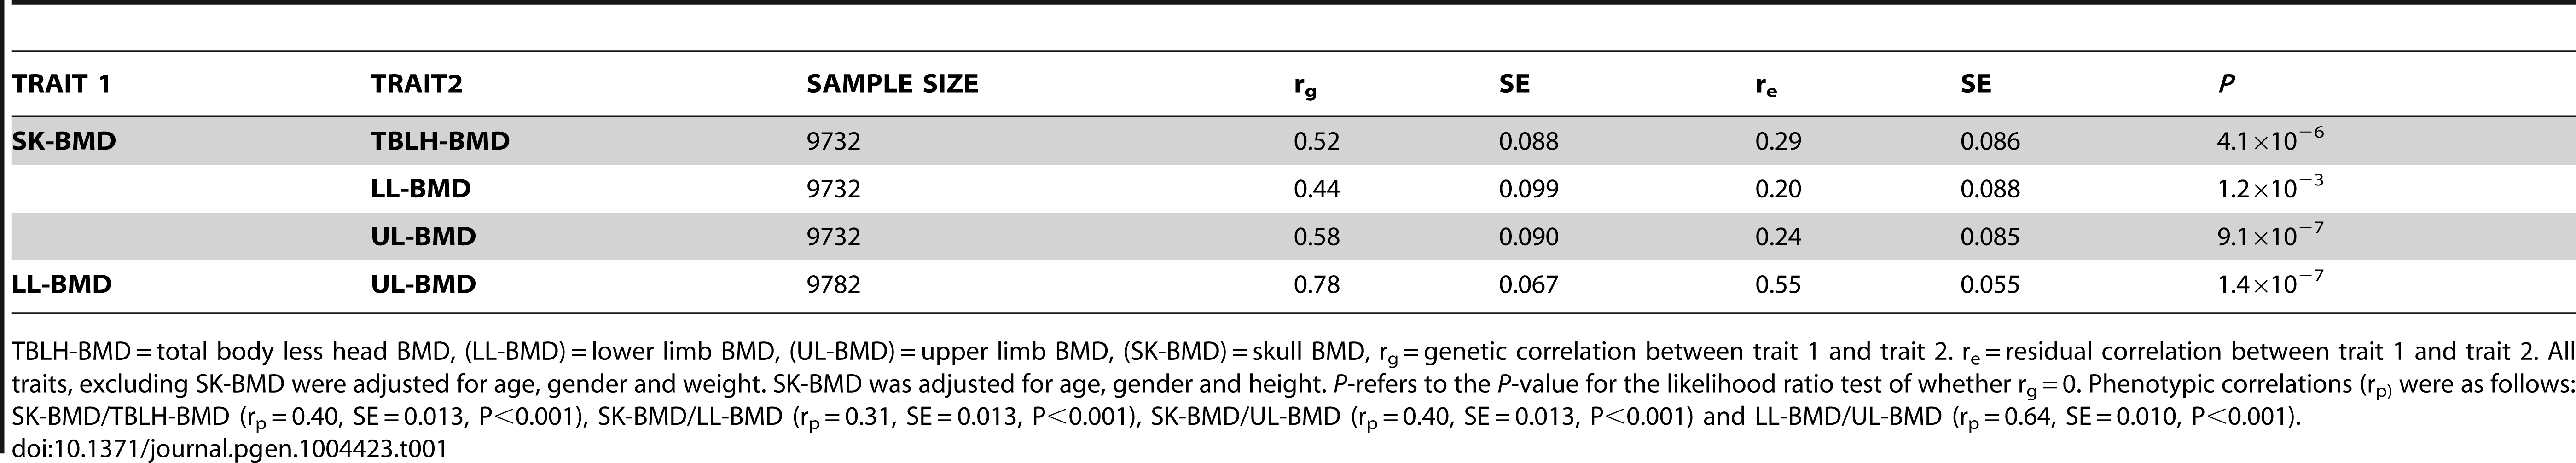 Bivariate GCTA estimates of the genetic and residual correlations for bone mineral density measurements at the total-body less head, lower limb, upper limb and skull for the ALSPAC cohort.